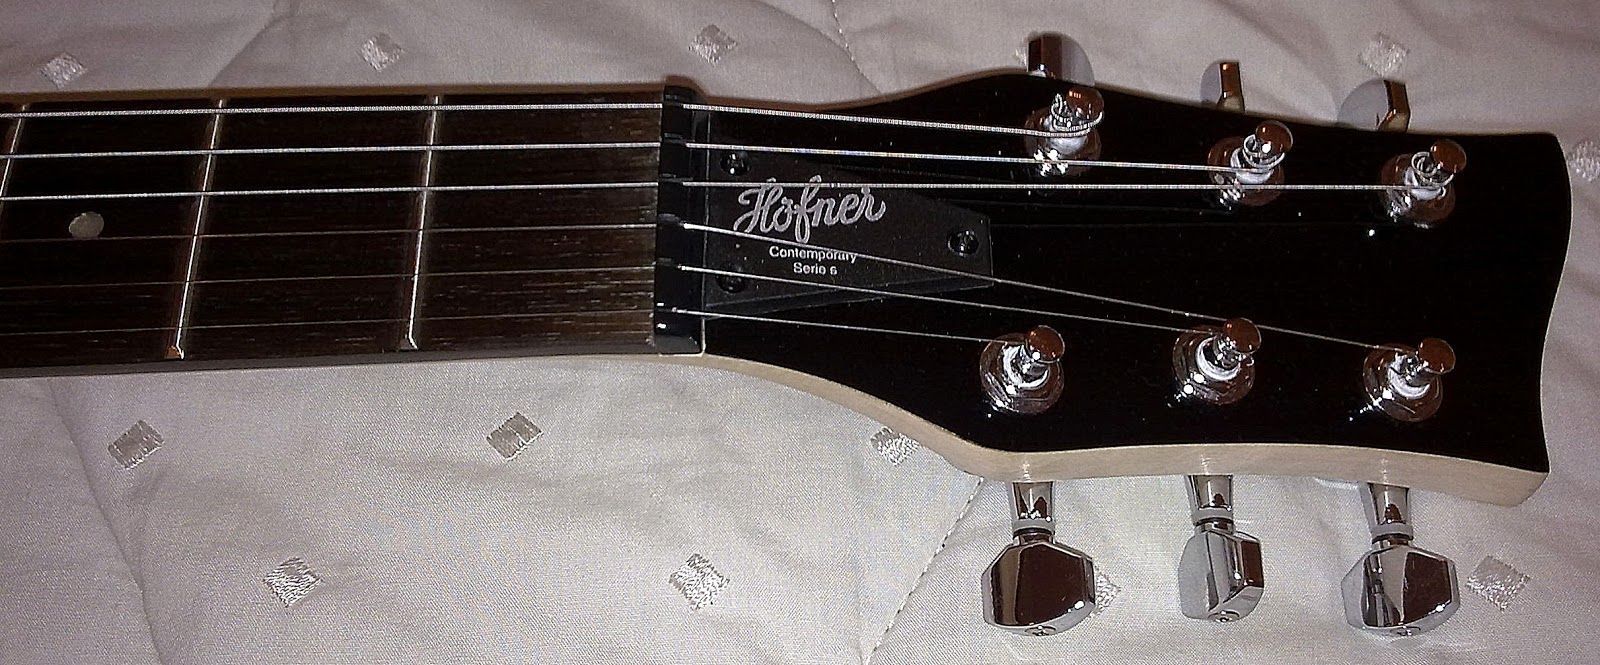 hight resolution of 0 022 f for humbucker normally 0 047 f is used for single coil pickups